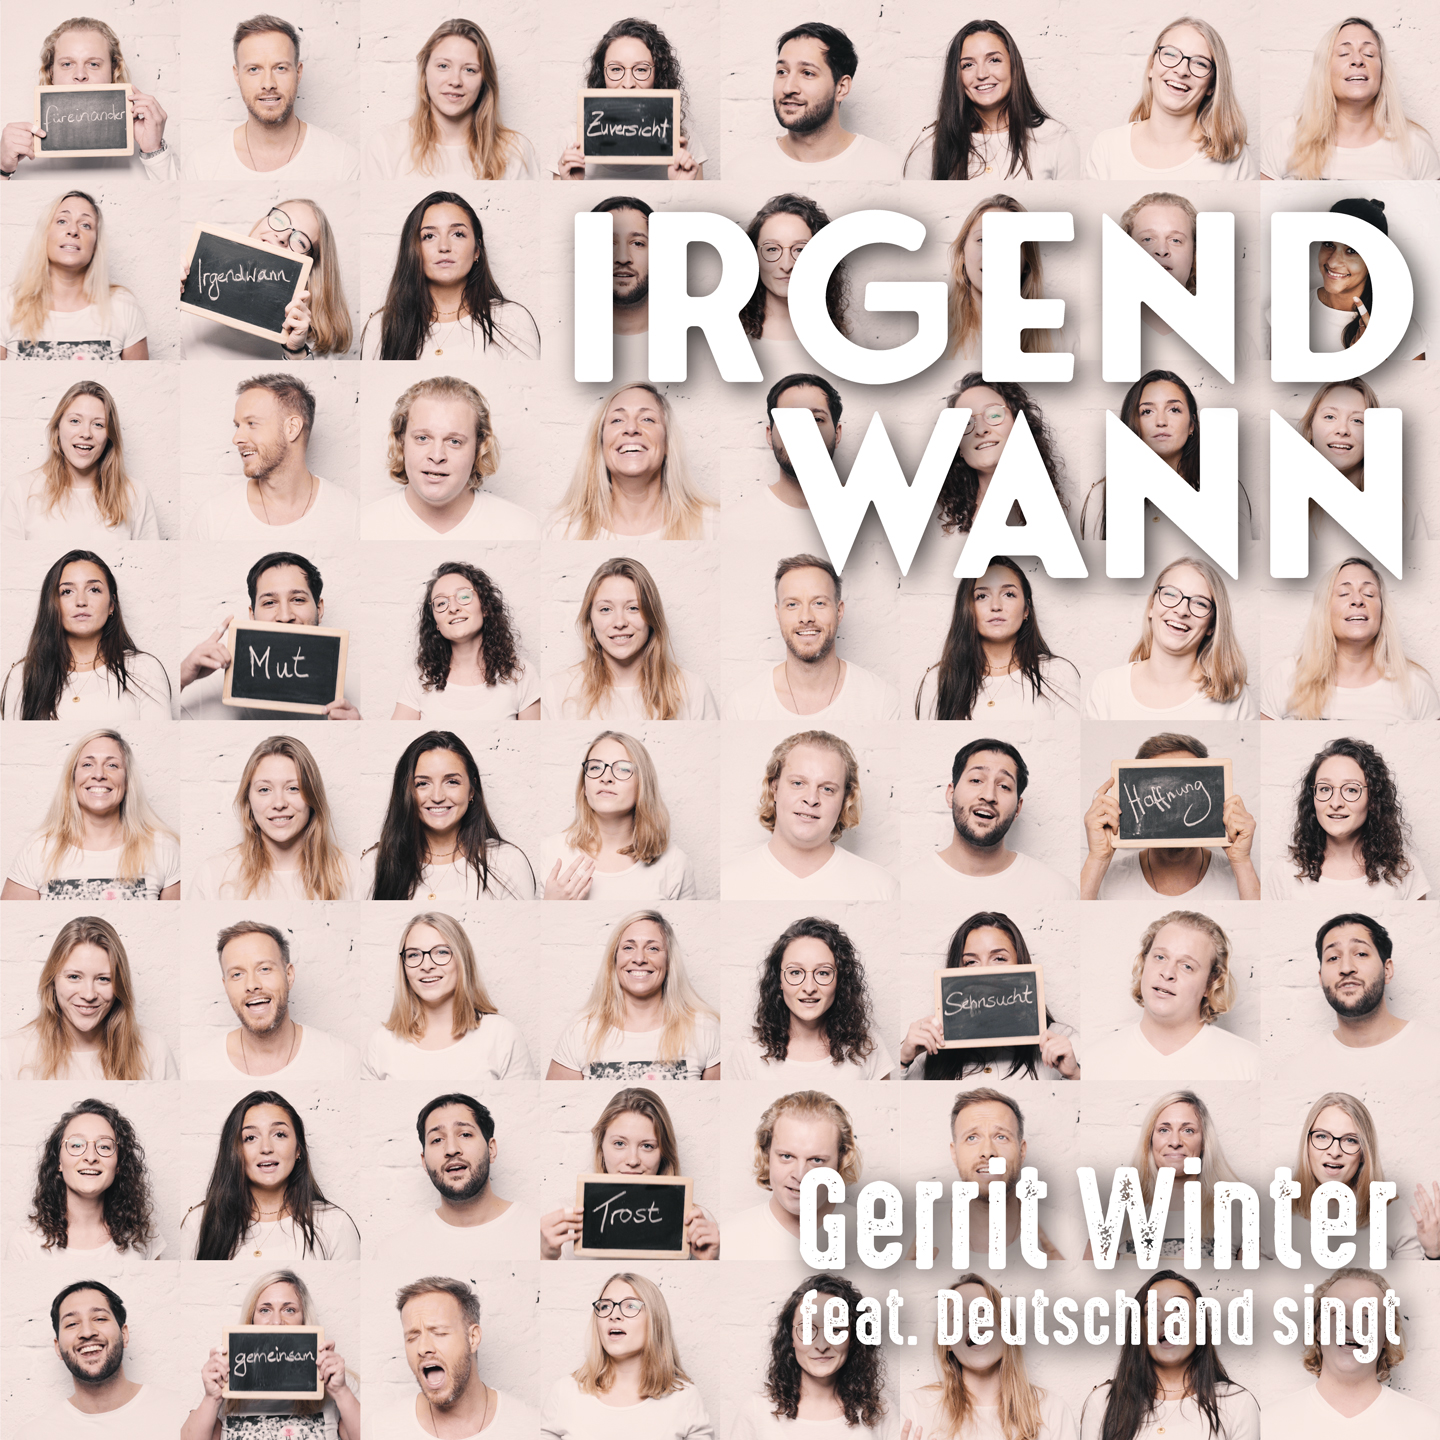 Gerrit Winter Single Irgendwann 2020